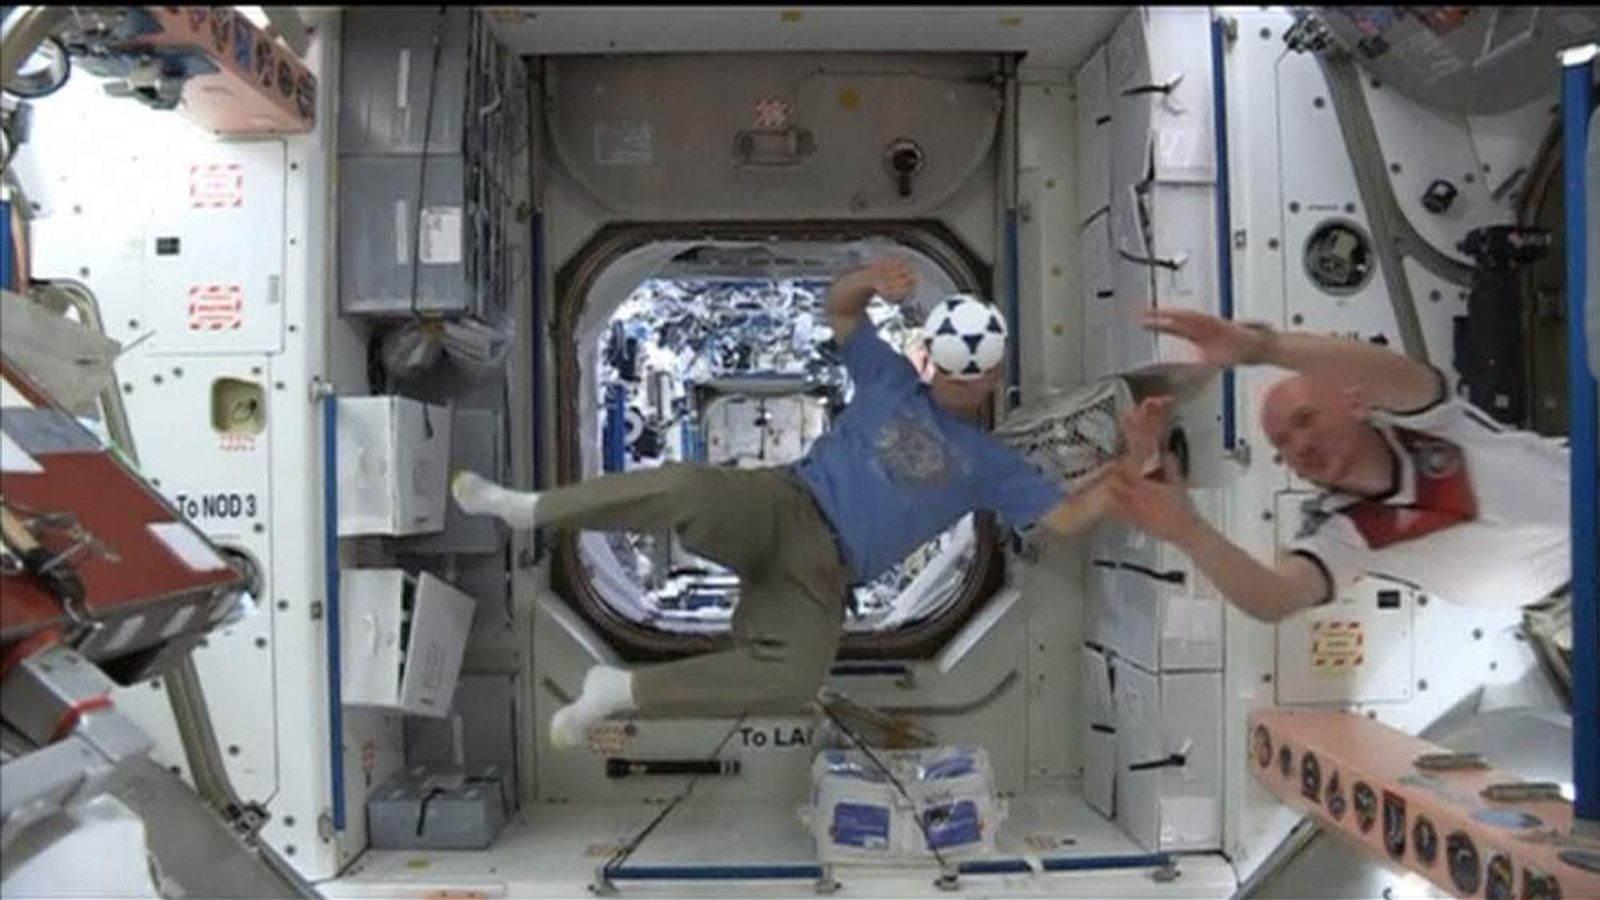 Astronauts on the International Space Station prepare for World Cup